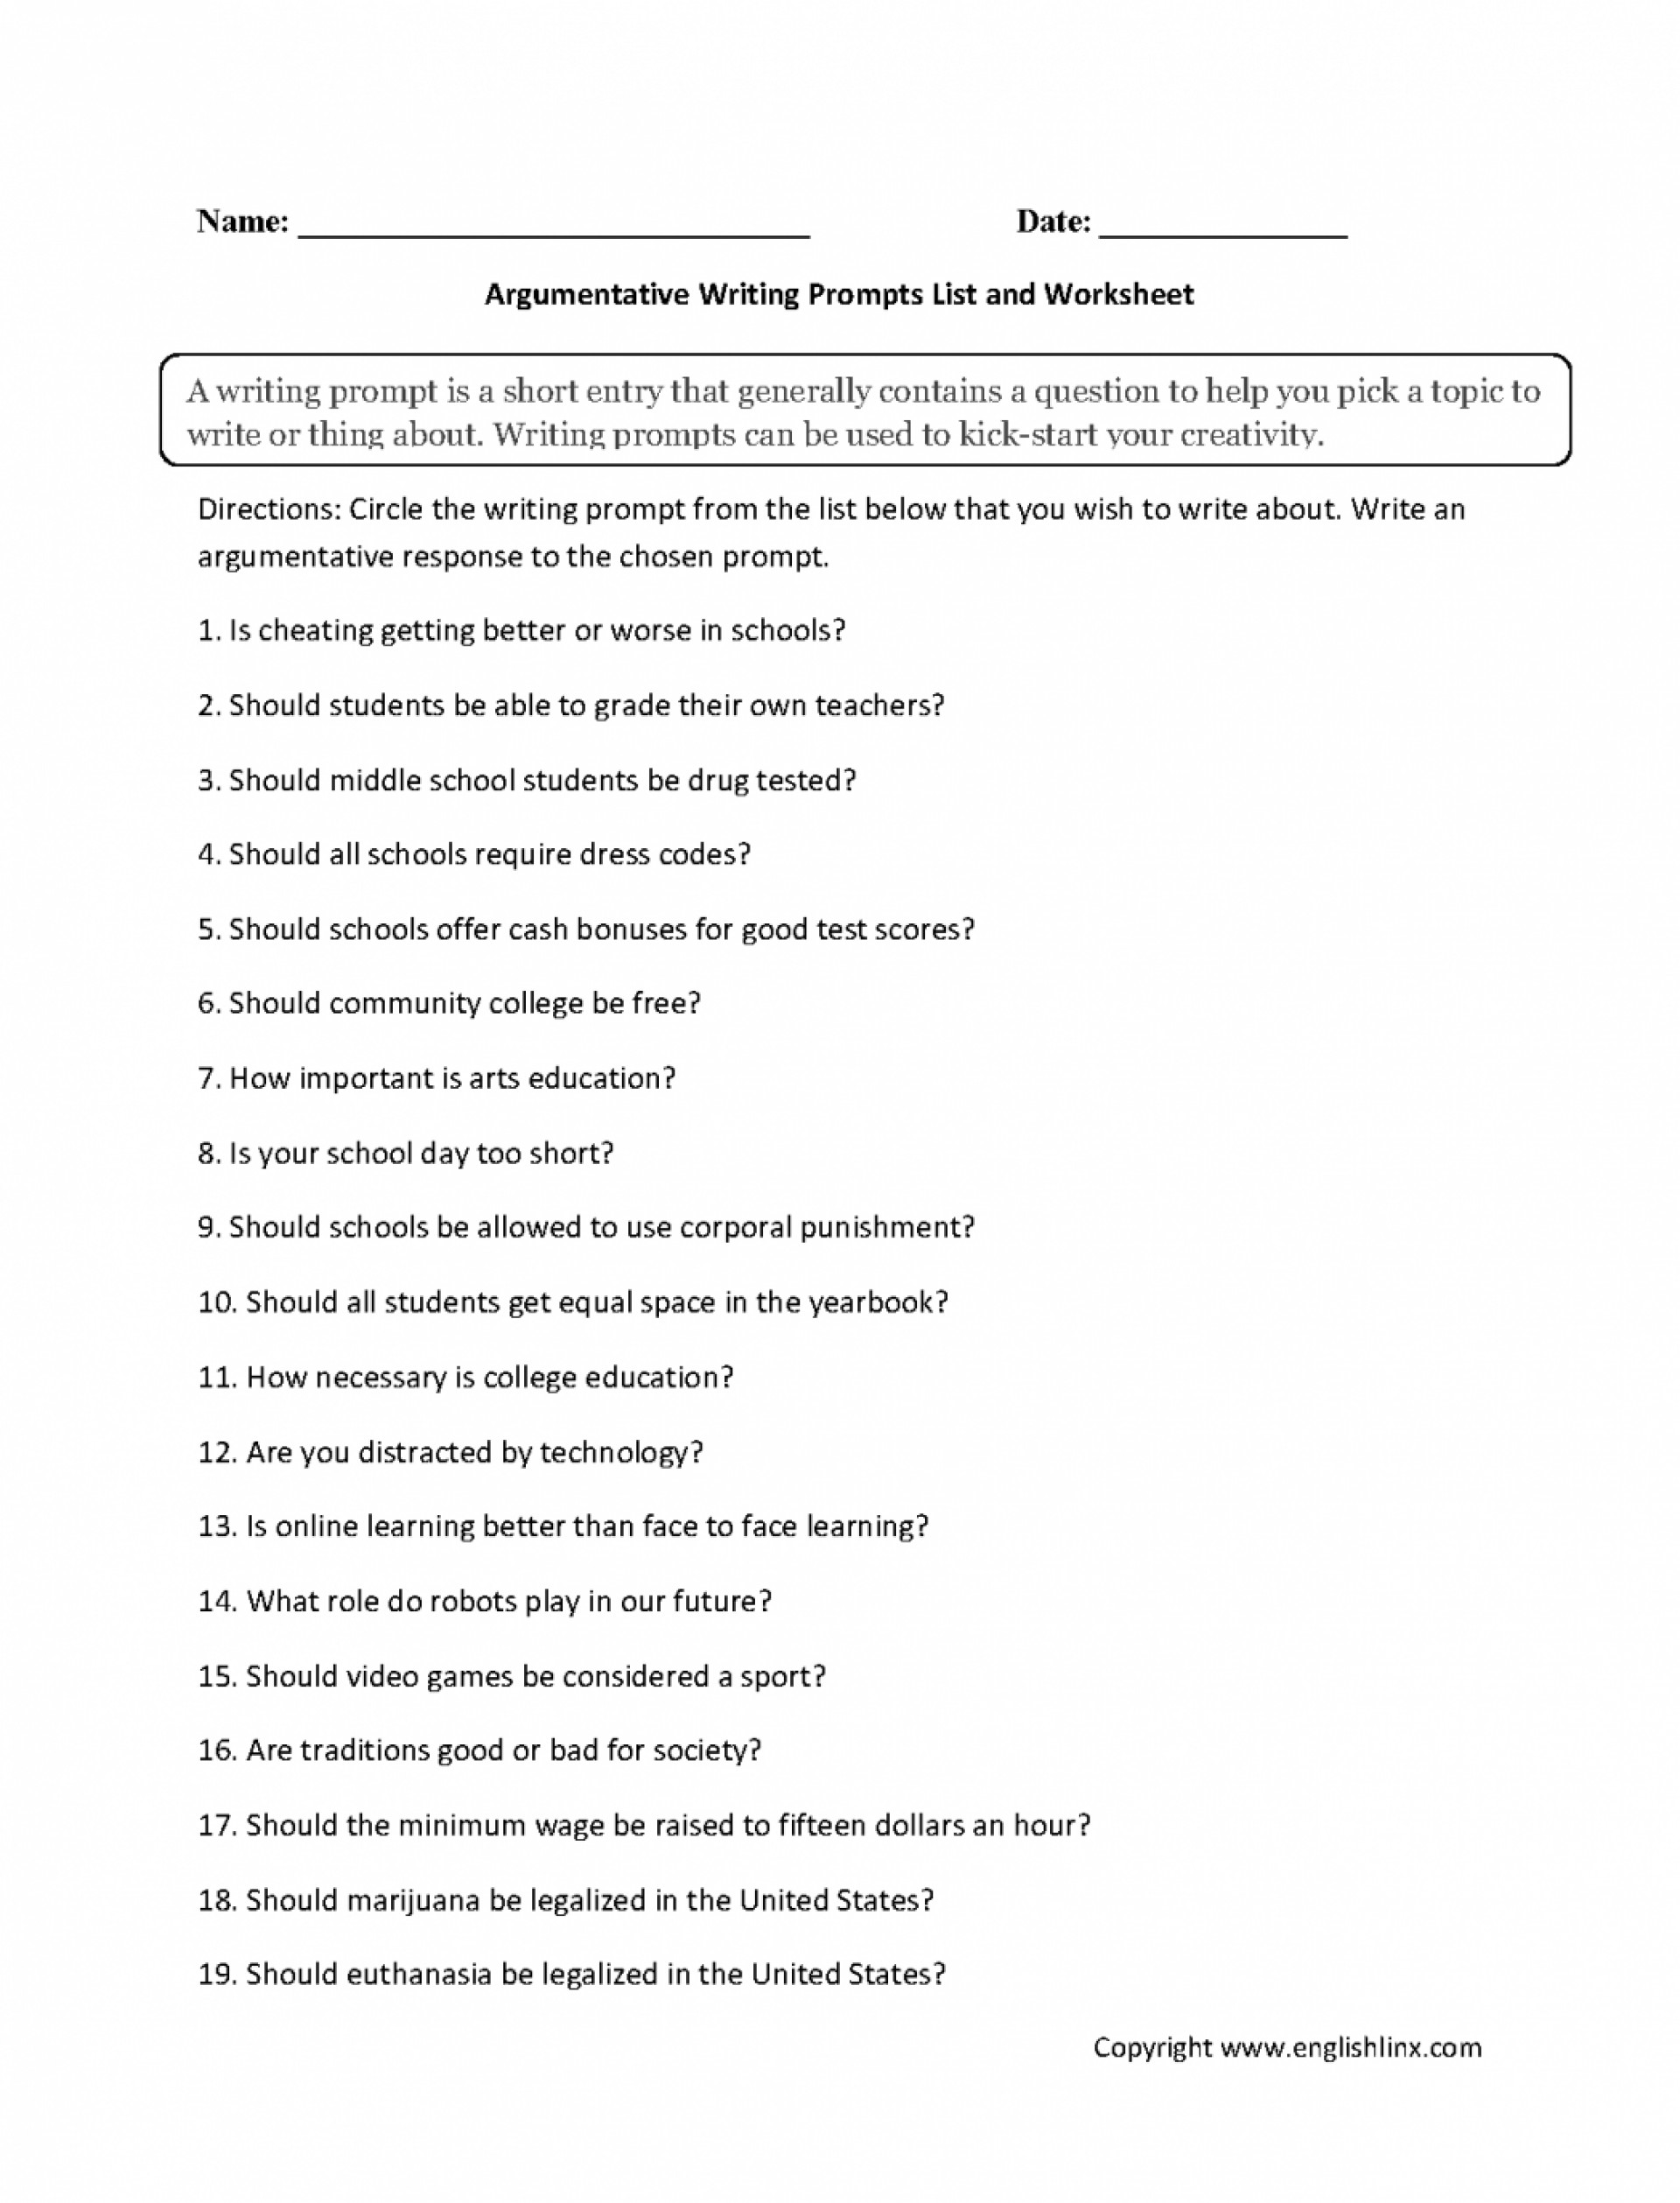 002 Essay Writing Prompts Example Argument Goal Blockety Co For College Argumentative List Work High School Students Adults 5th Grade Middle Elementary 6th 9th Formidable Narrative 5 Paragraph 1920